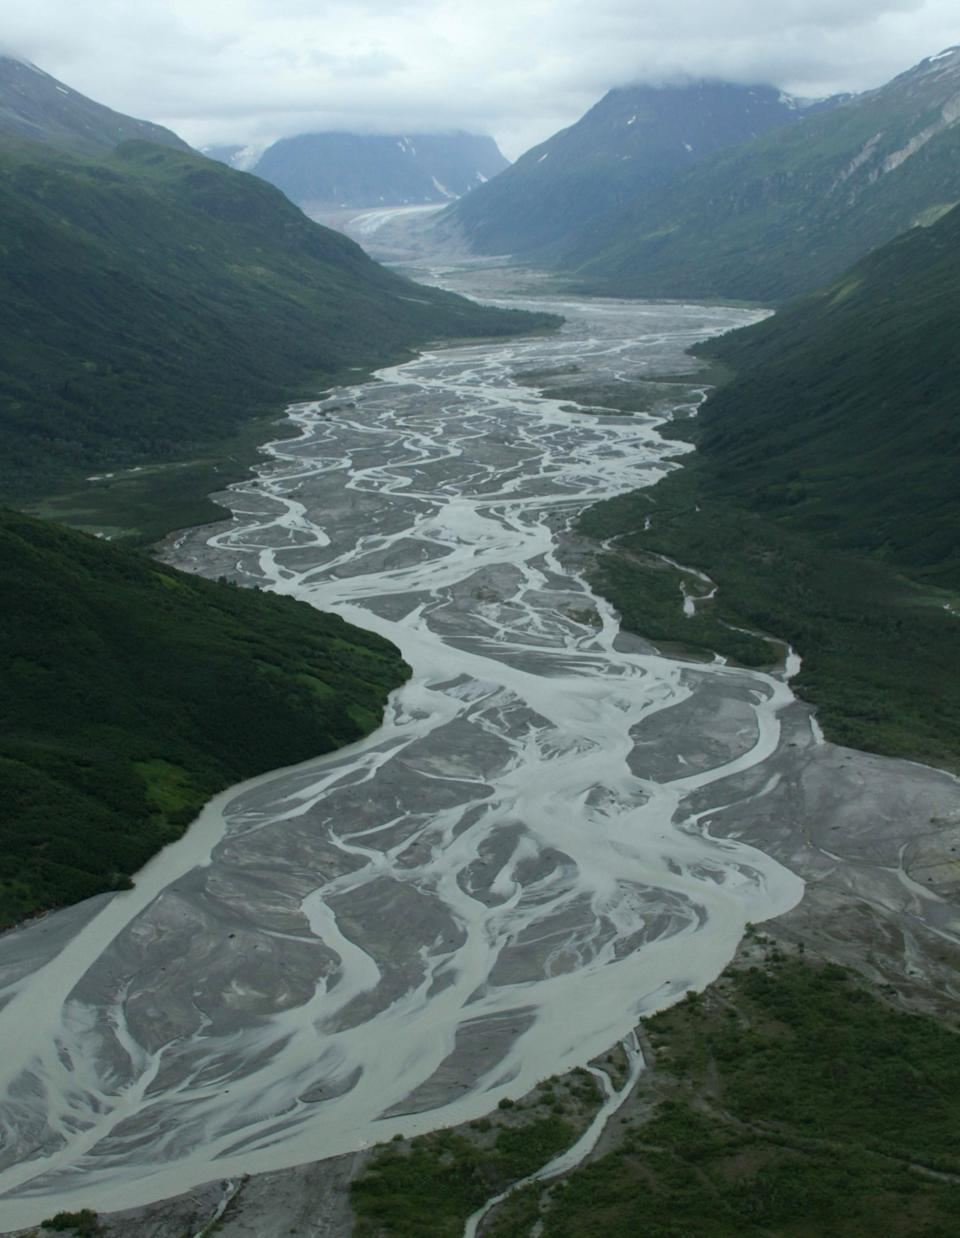 This photo taken July 5, 2013, in Lake Clark Pass near Port Alsworth, Alaska, shows a river valley cutting through the mountains. Many float planes will fly through the pass as they take day-trippers to Katmai National Park and Preserve to see the brown bears. (AP Photo/Mark Thiessen)